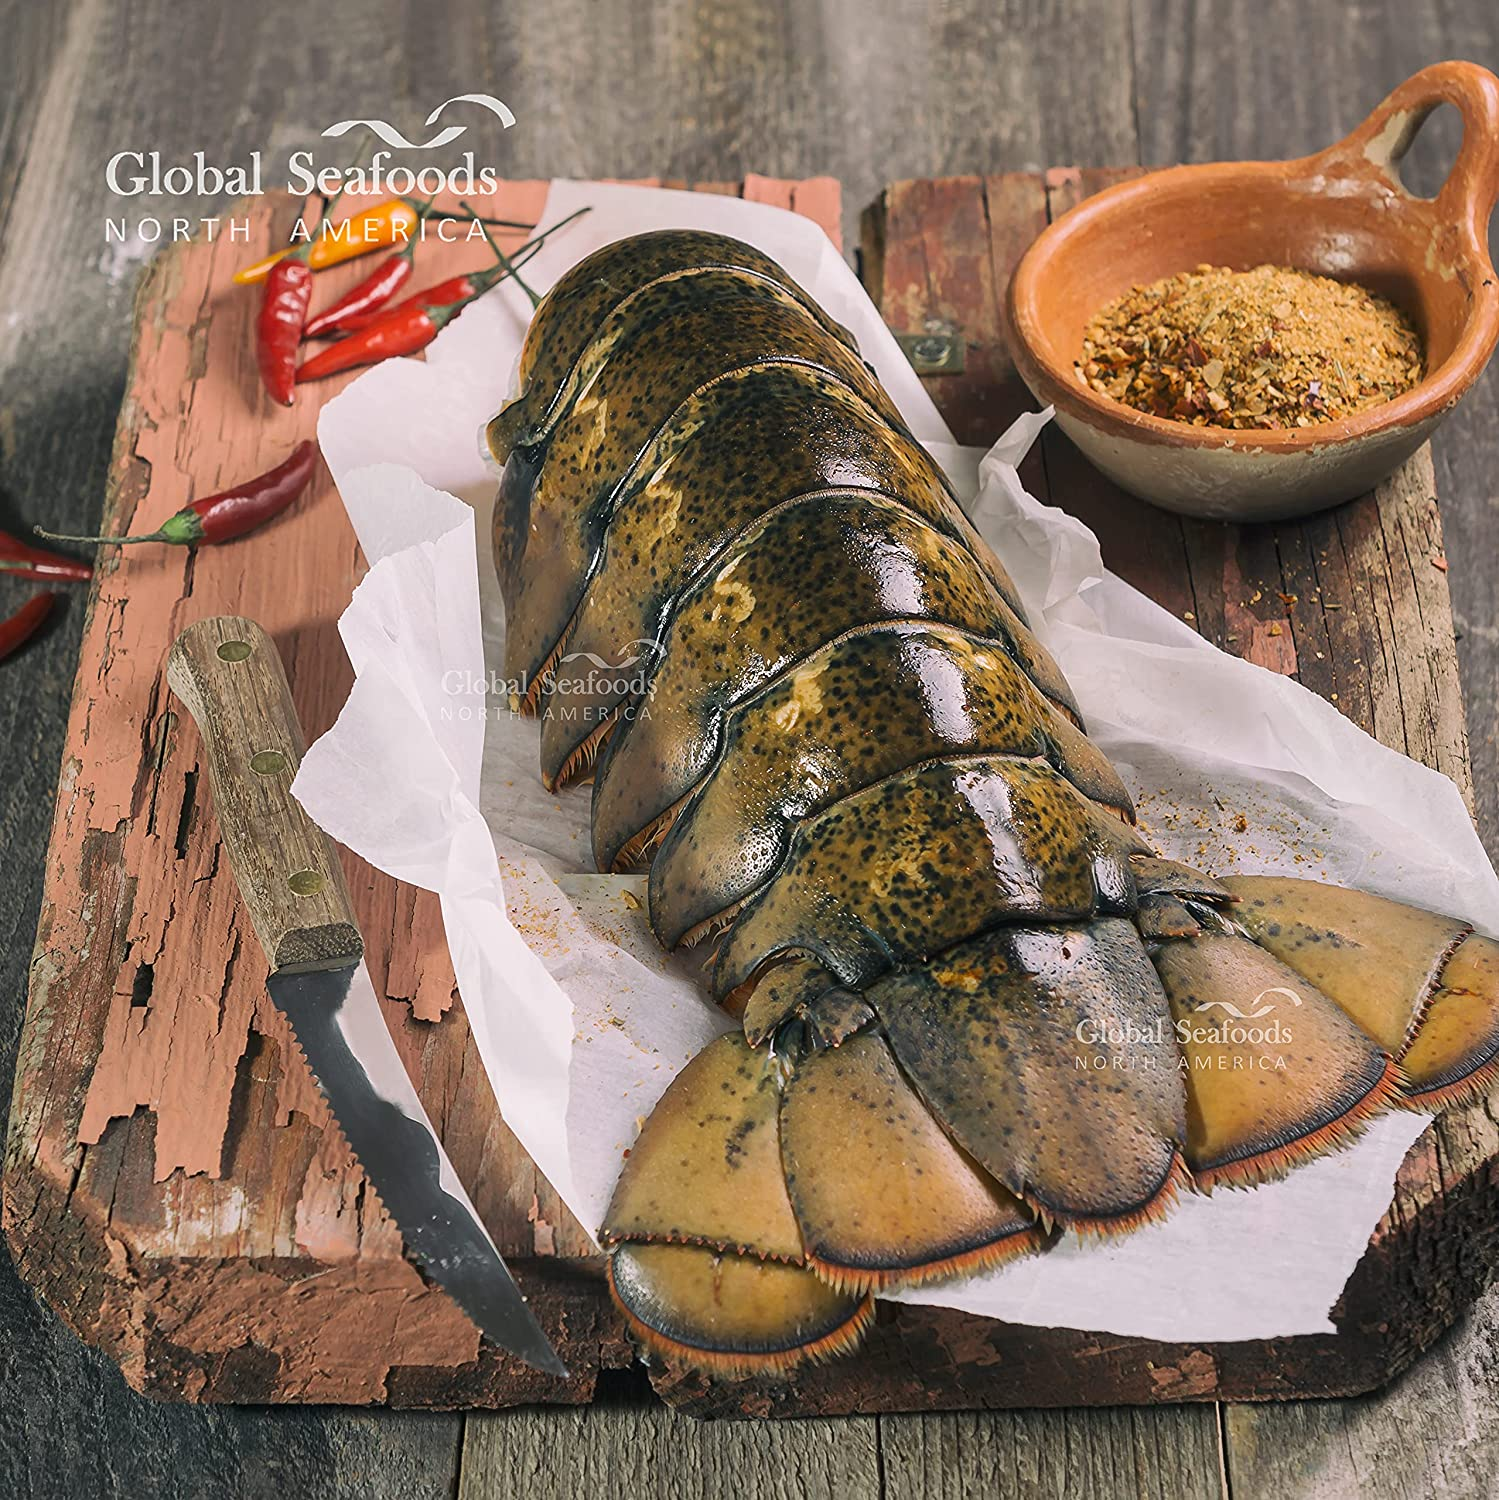 Global Latest item Seafoods - Giant Lobster Tails 20+ C 5 Max 40% OFF oz tail- lbs per